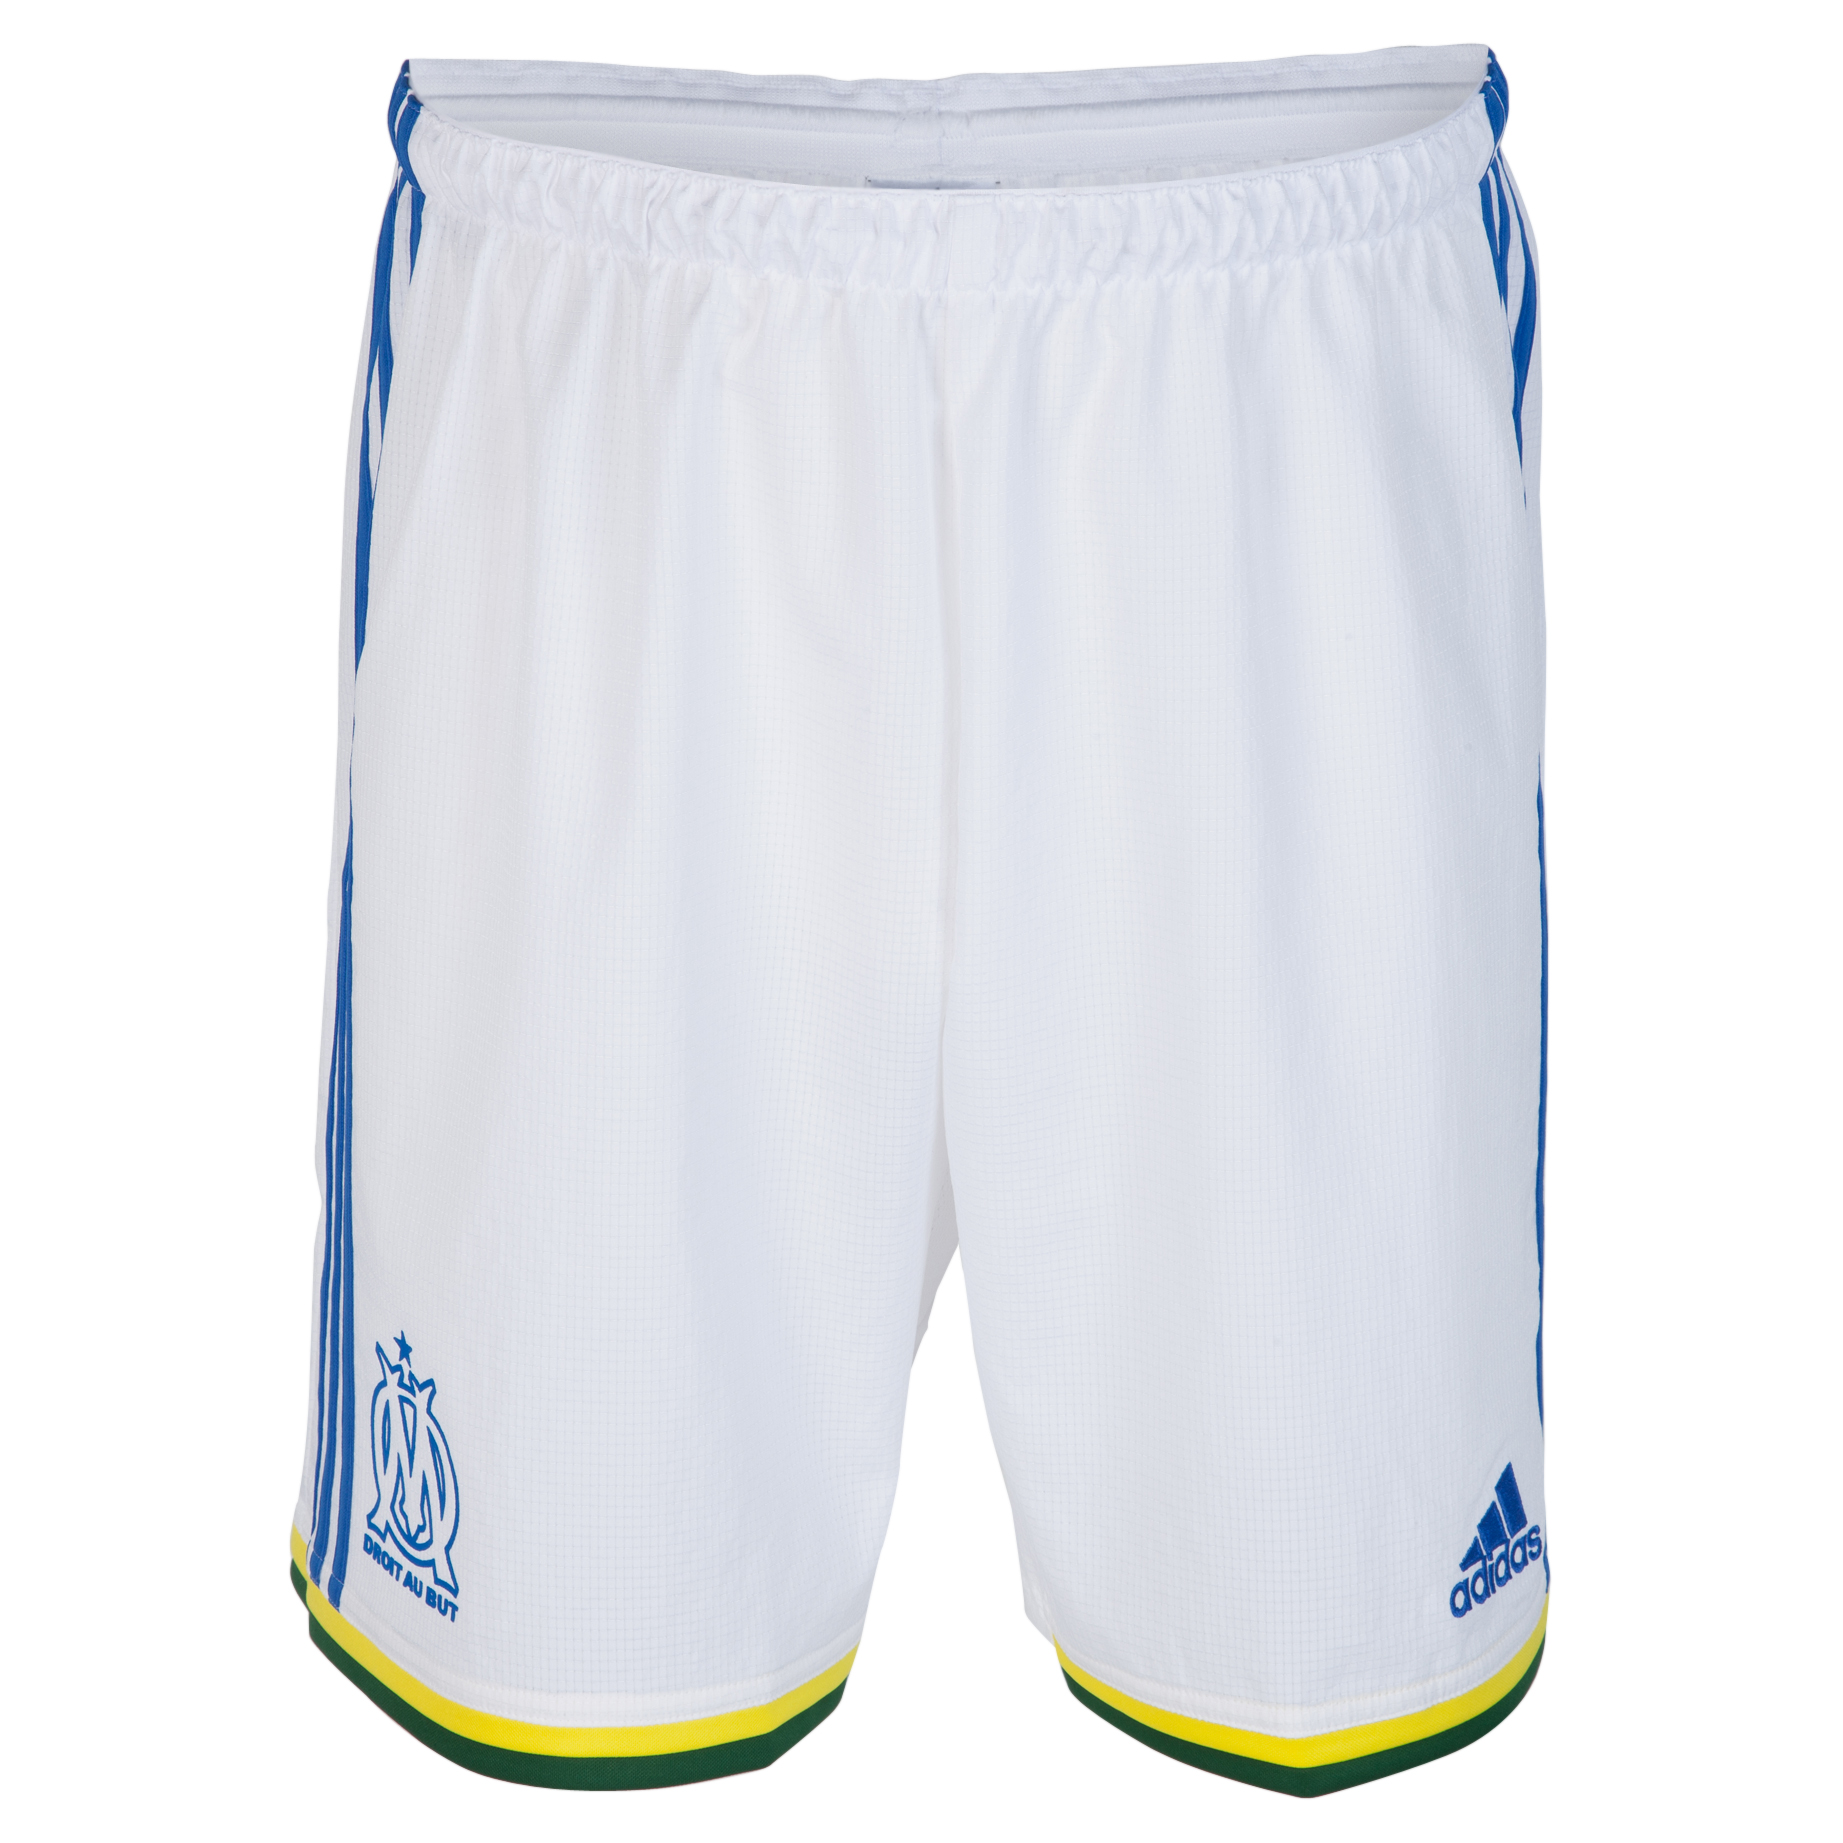 Olympique de Marseille Event Short 2013/14